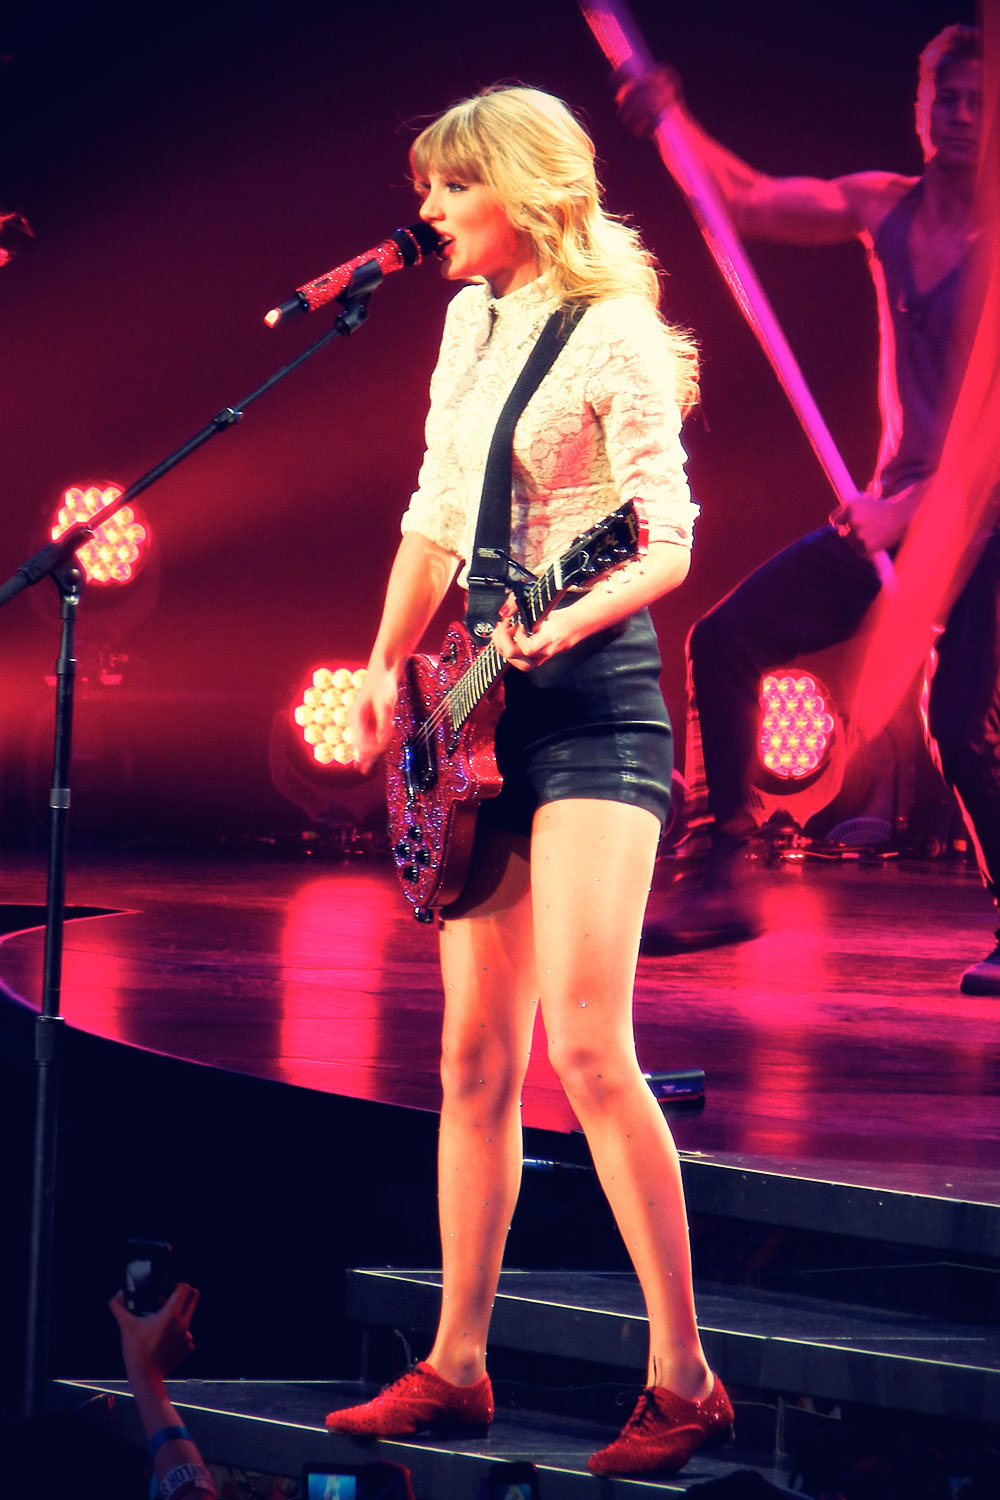 Taylor Swift performs at Red Tour concert